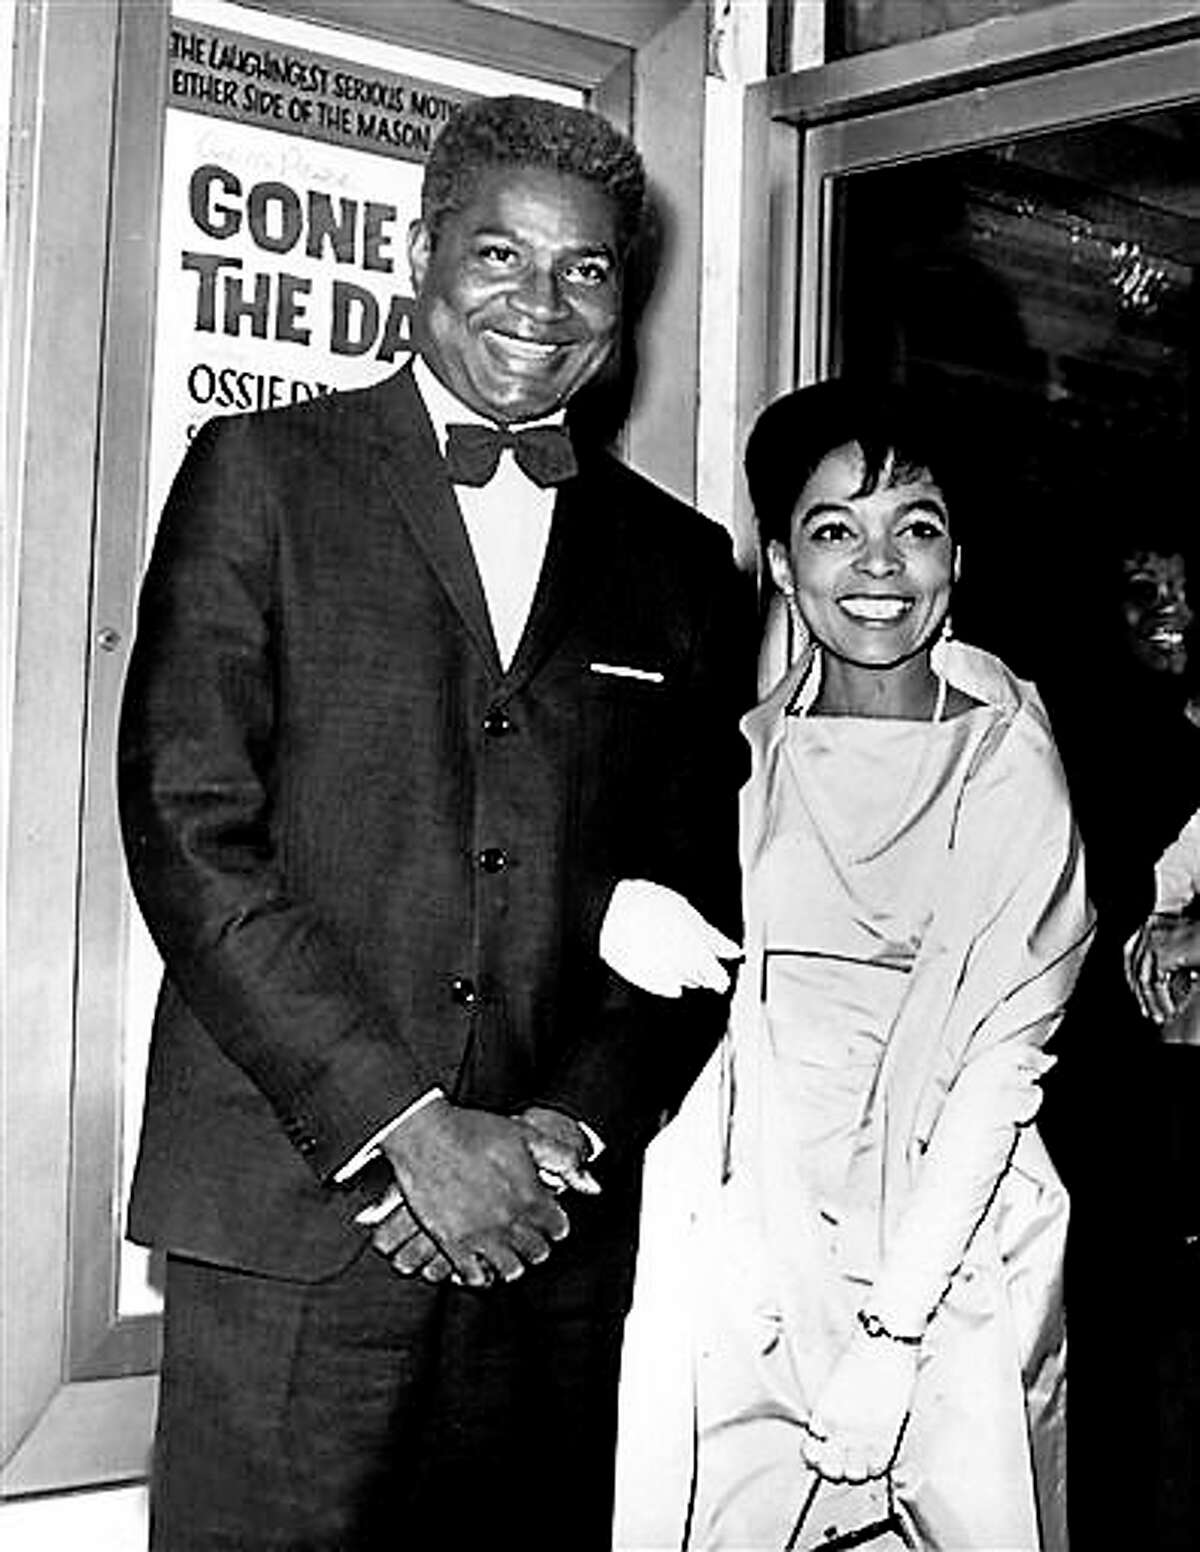 """In this Sept. 23, 1963, file photo, actors Ossie Davis, left, and Ruby Dee pose in front of the movie poster at the opening night gala of their film """"Gone Are the Days!"""" based on Davis' play """"Purlie Victorious,"""" at the Trans-Lux East Theater in New York City. Dee, an acclaimed actor and civil rights activist whose versatile career spanned stage, radio television and film, has died at age 91, according to her daughter. Nora Davis Day told The Associated Press on Thursday, June 11, 2014, that her mother died at home at New Rochelle, New York, on Wednesday night."""